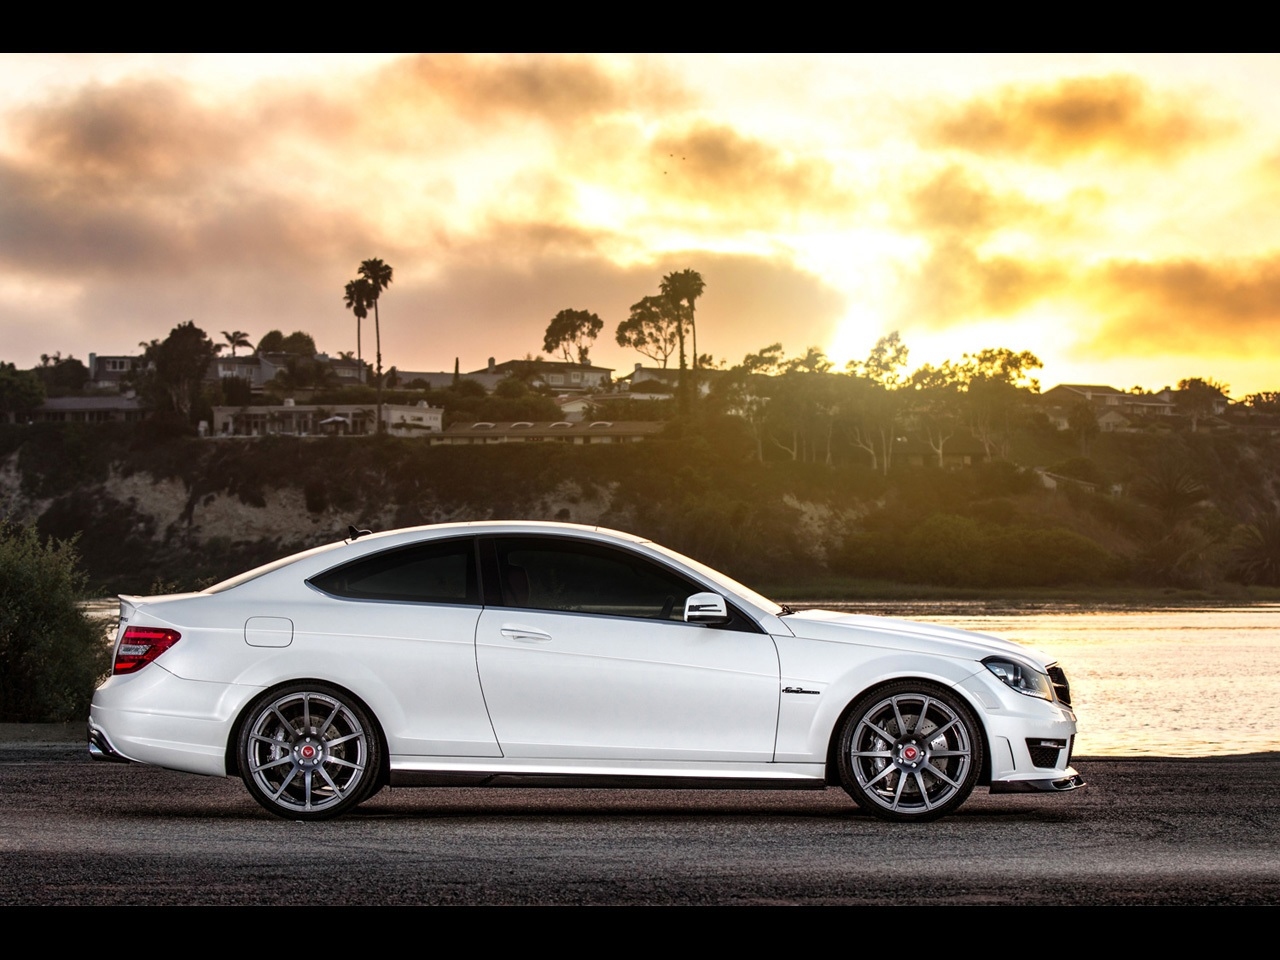 2013-mercedes-benz-c63-amg-side-static_wallpapers_35636_1280x960.jpg